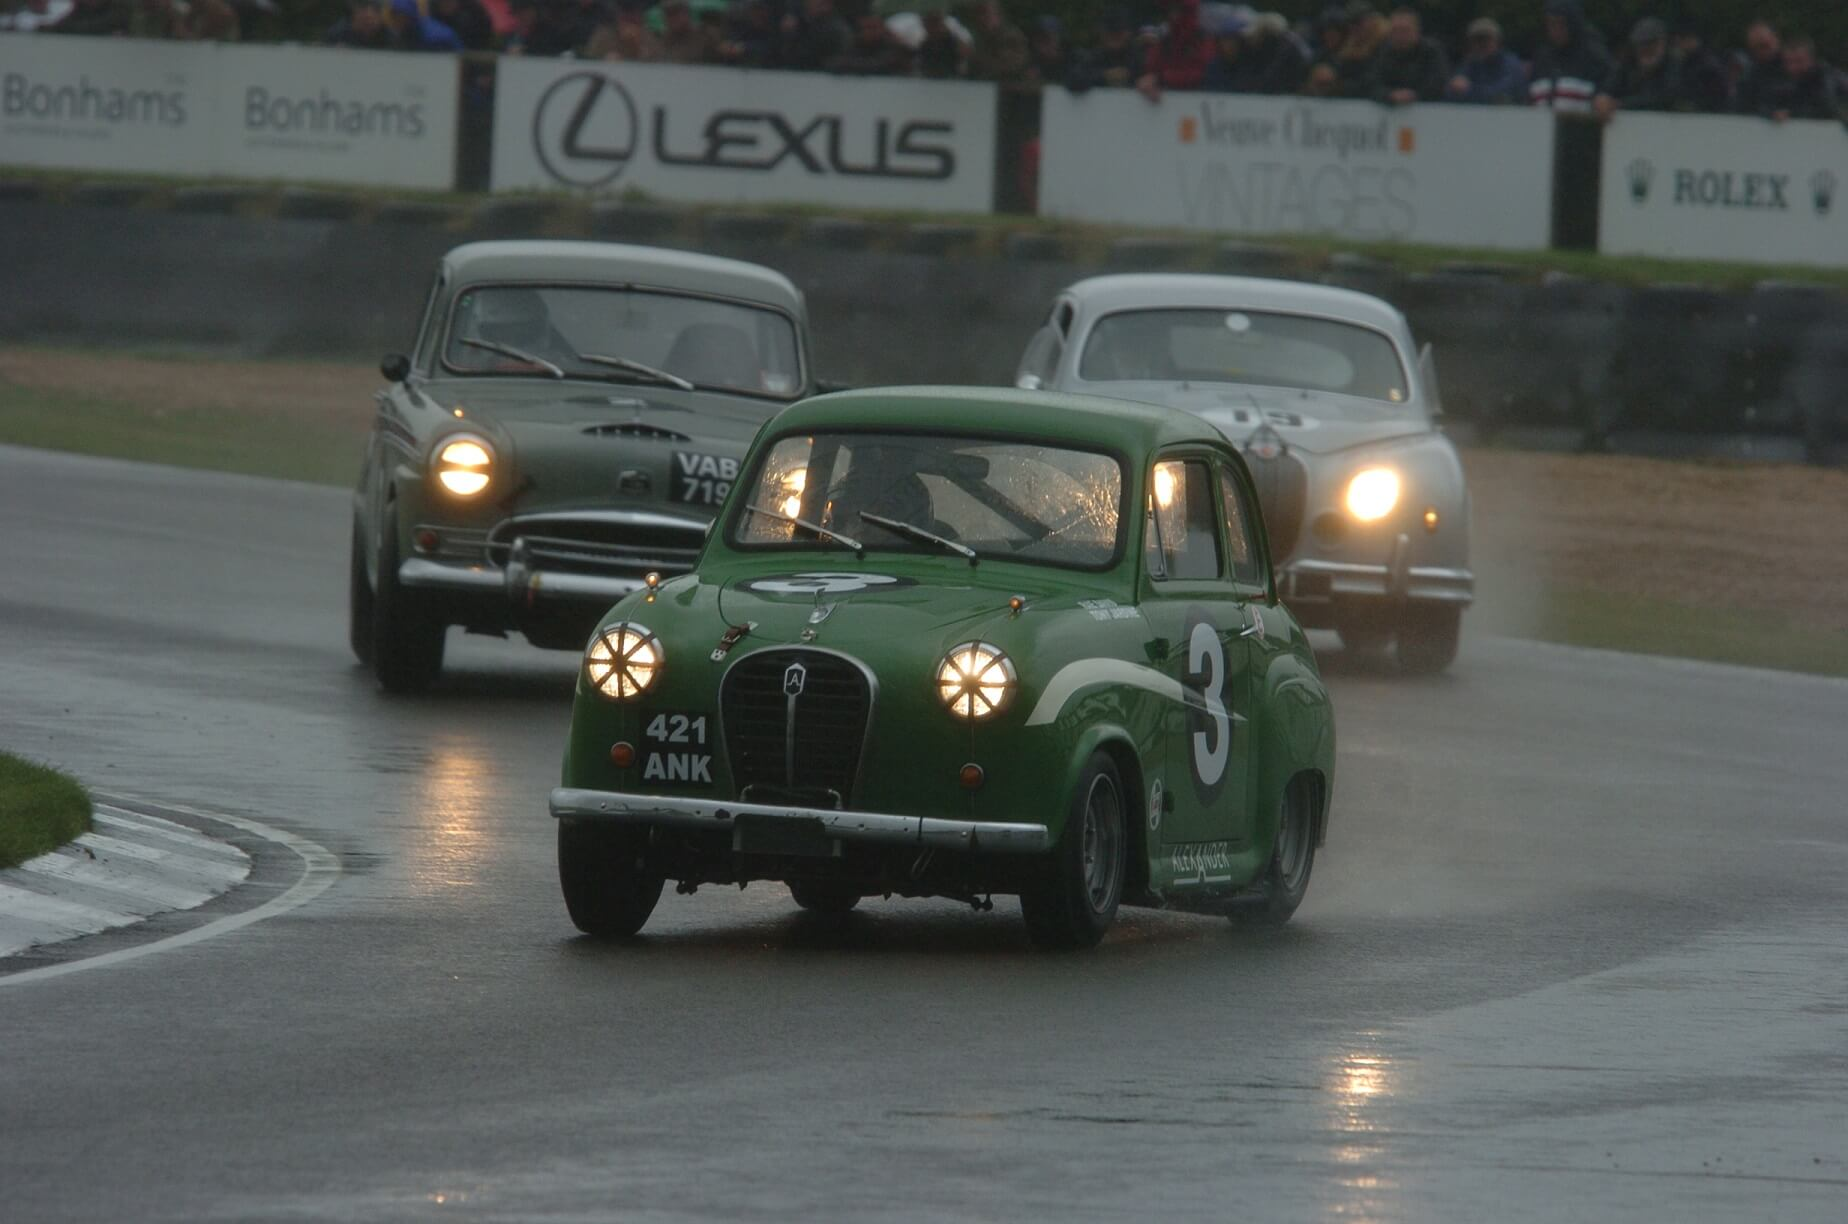 Castrol Classic Oils - St Mary's Challenge Goodwood